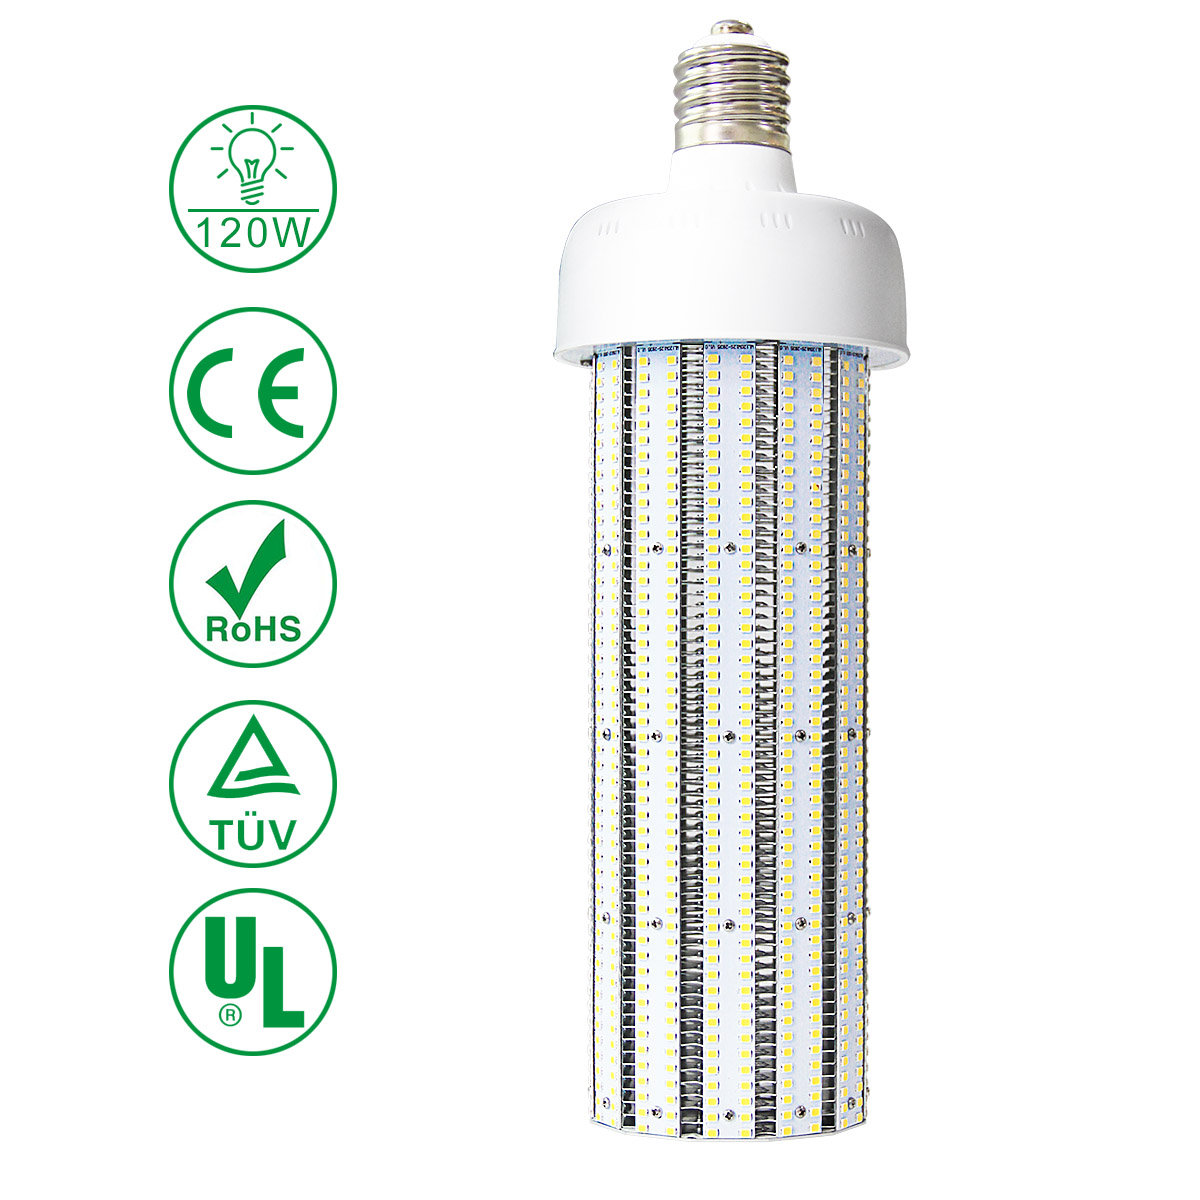 KAWELL 120W LED Corn Light Bulb E39 Large Mogul Base LED Street/Area Light Bulb for Fixtures HID/HPS/Metal Halide or CFL, 14400 lumen 5000K (Crystal White Glow) UL Listed TUV-Qualified DLC Certified